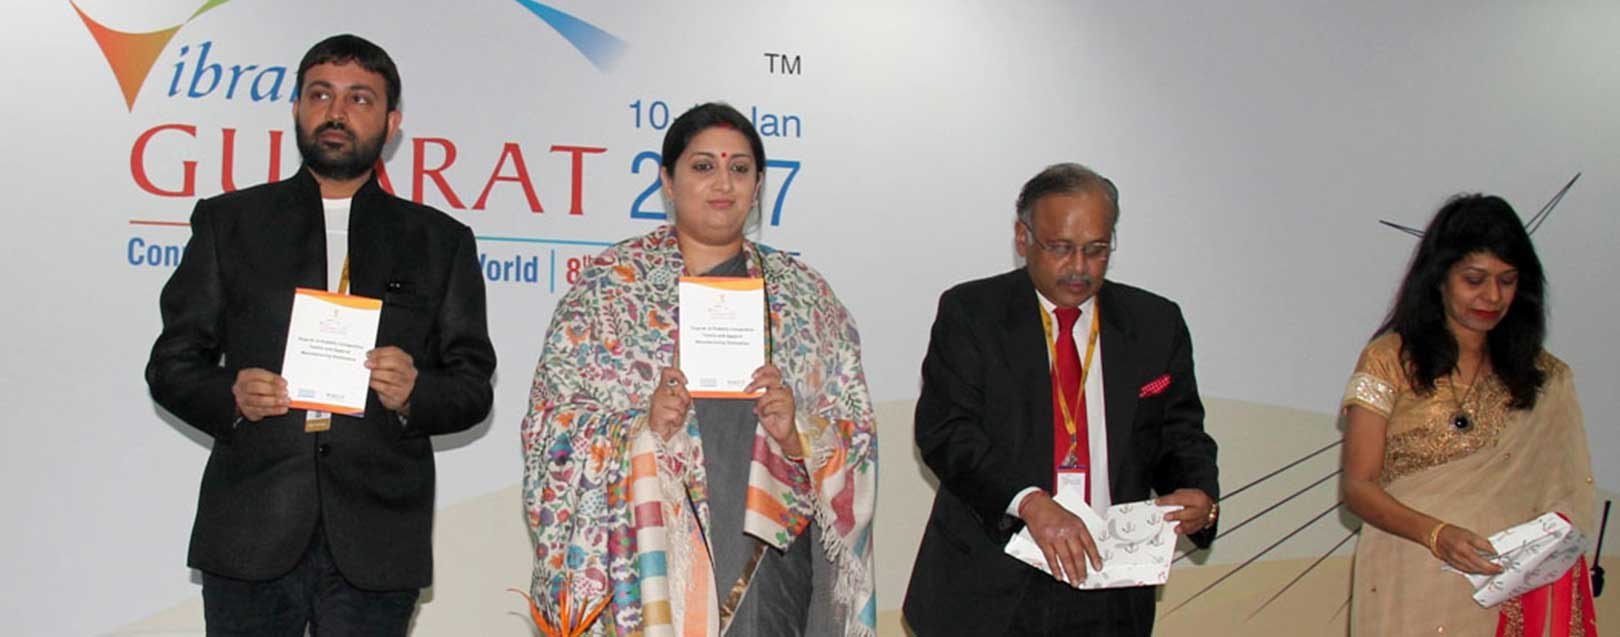 MoUs worth Rs.8,835 cr signed in textile sector during Vibrant Gujarat